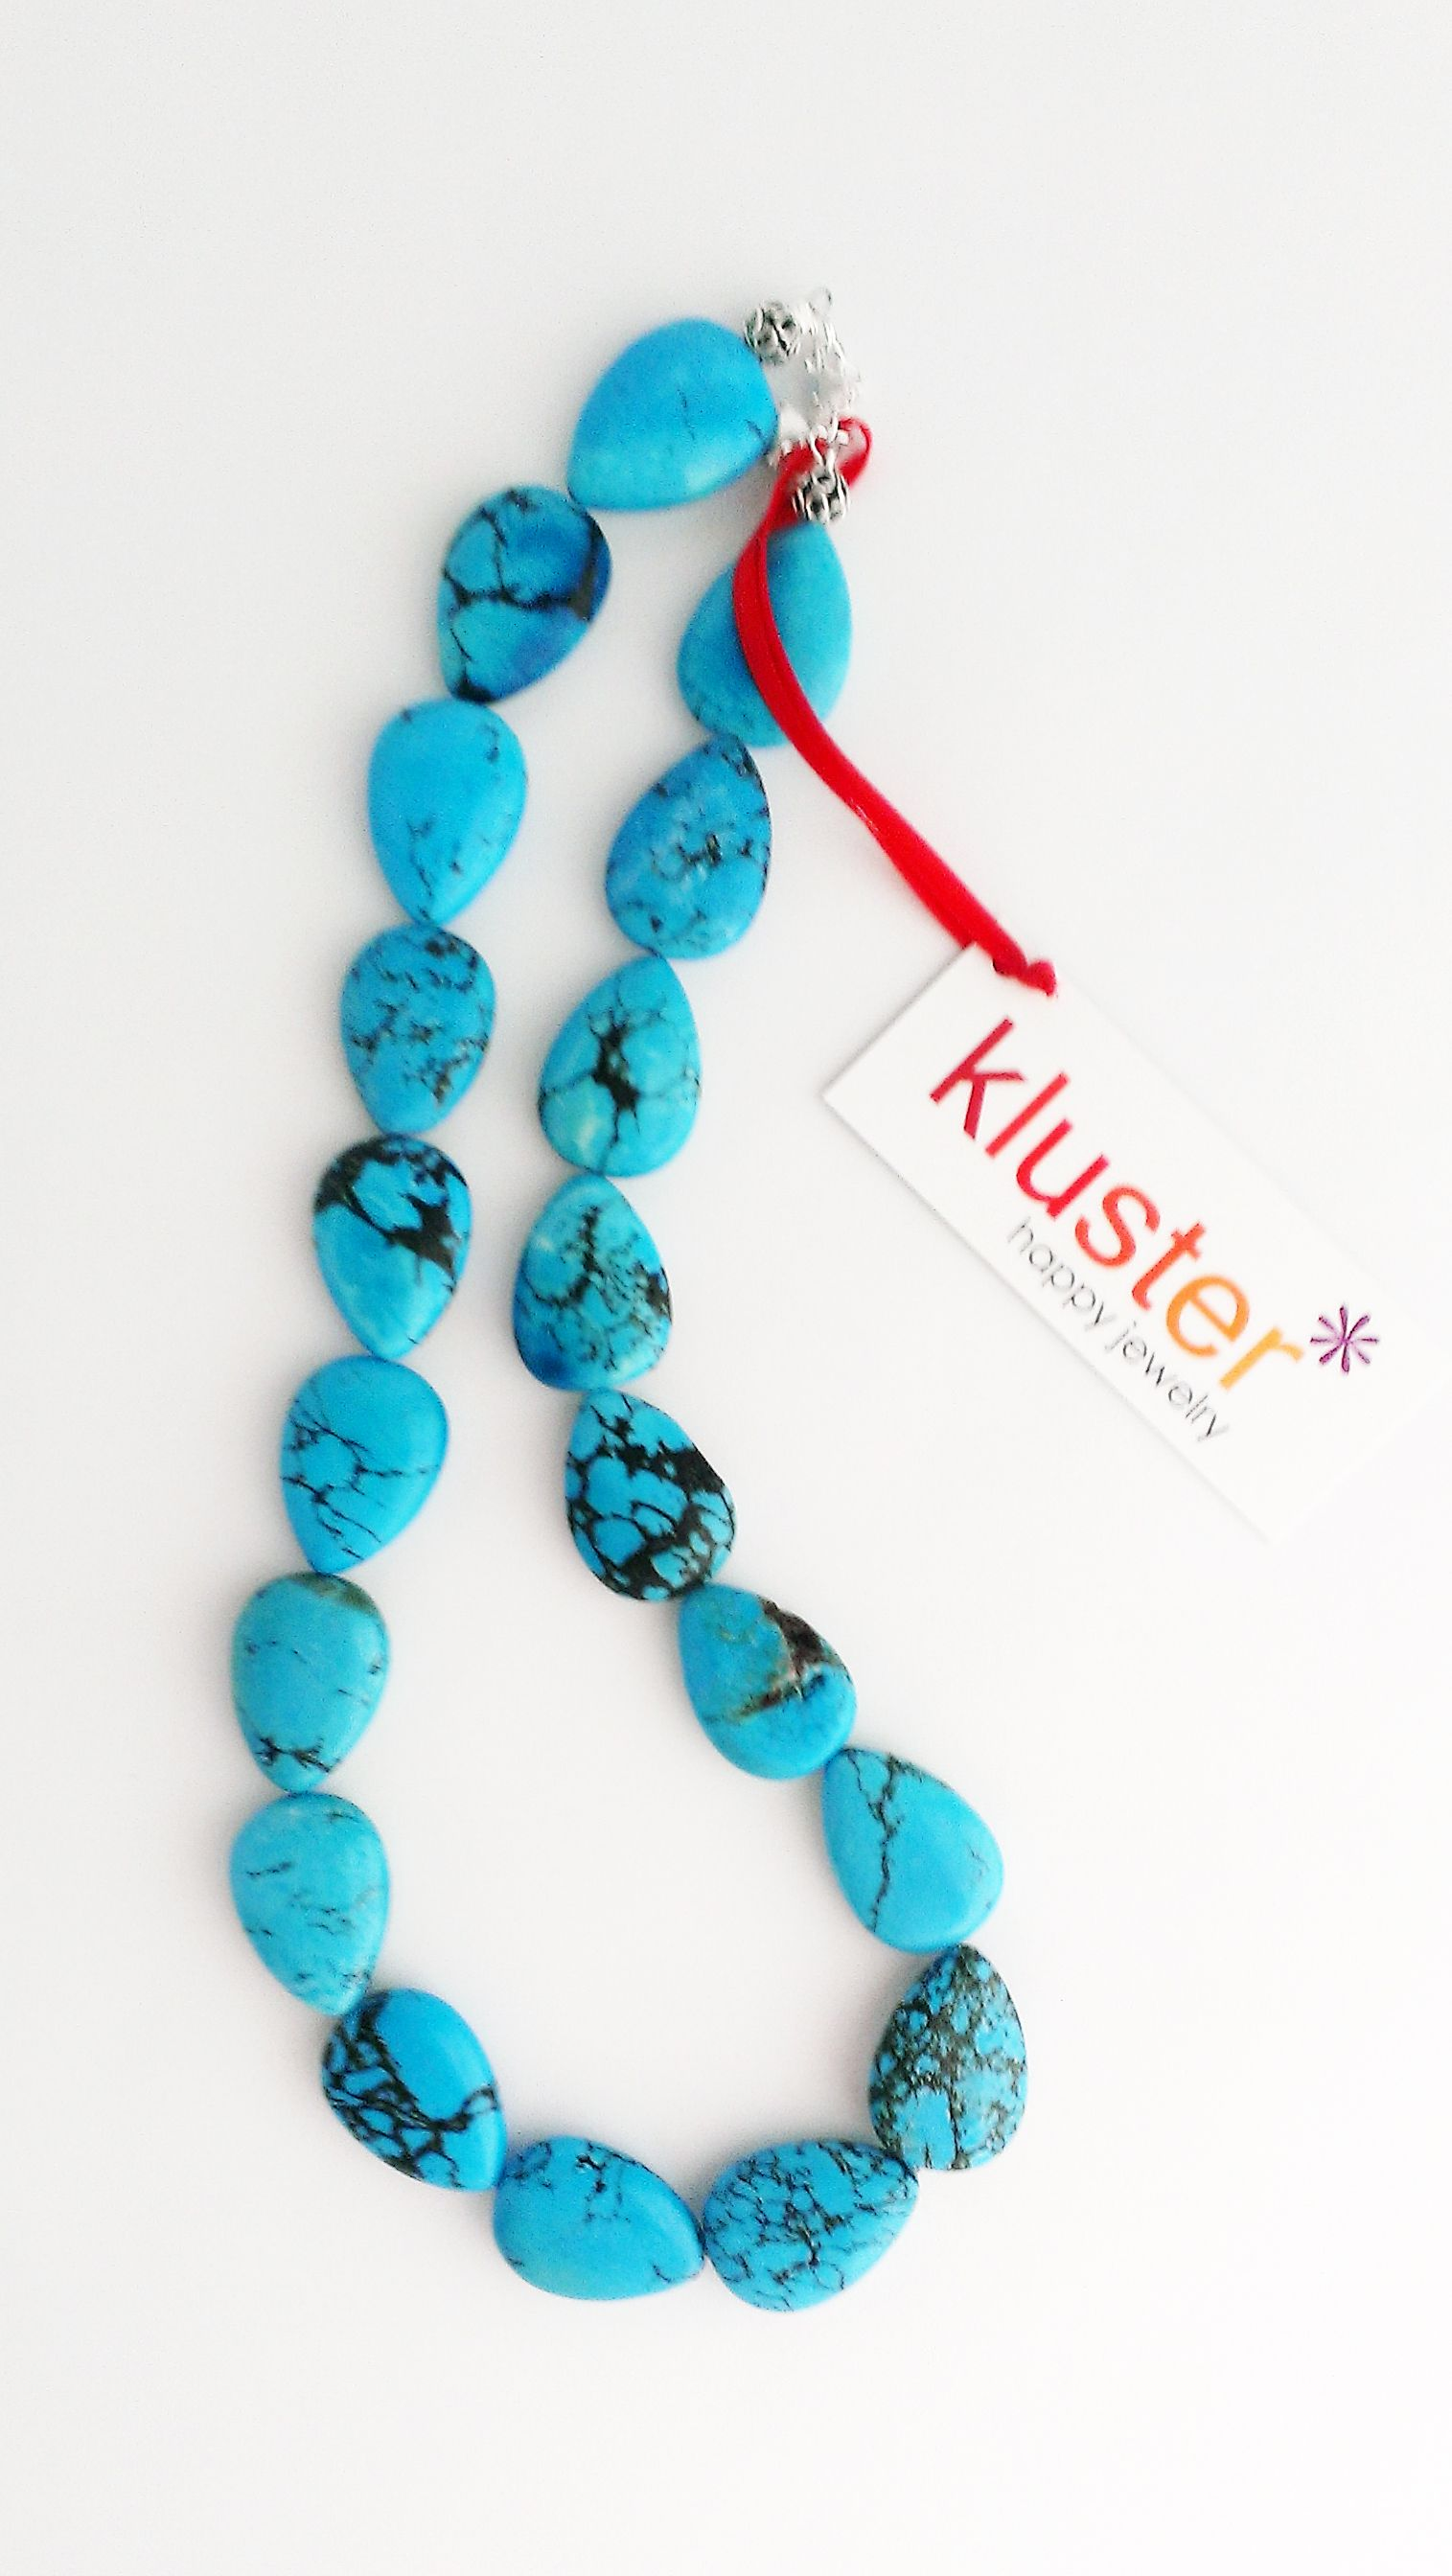 of henschke necklace blue covered cobalt product can shades as all be jewellery